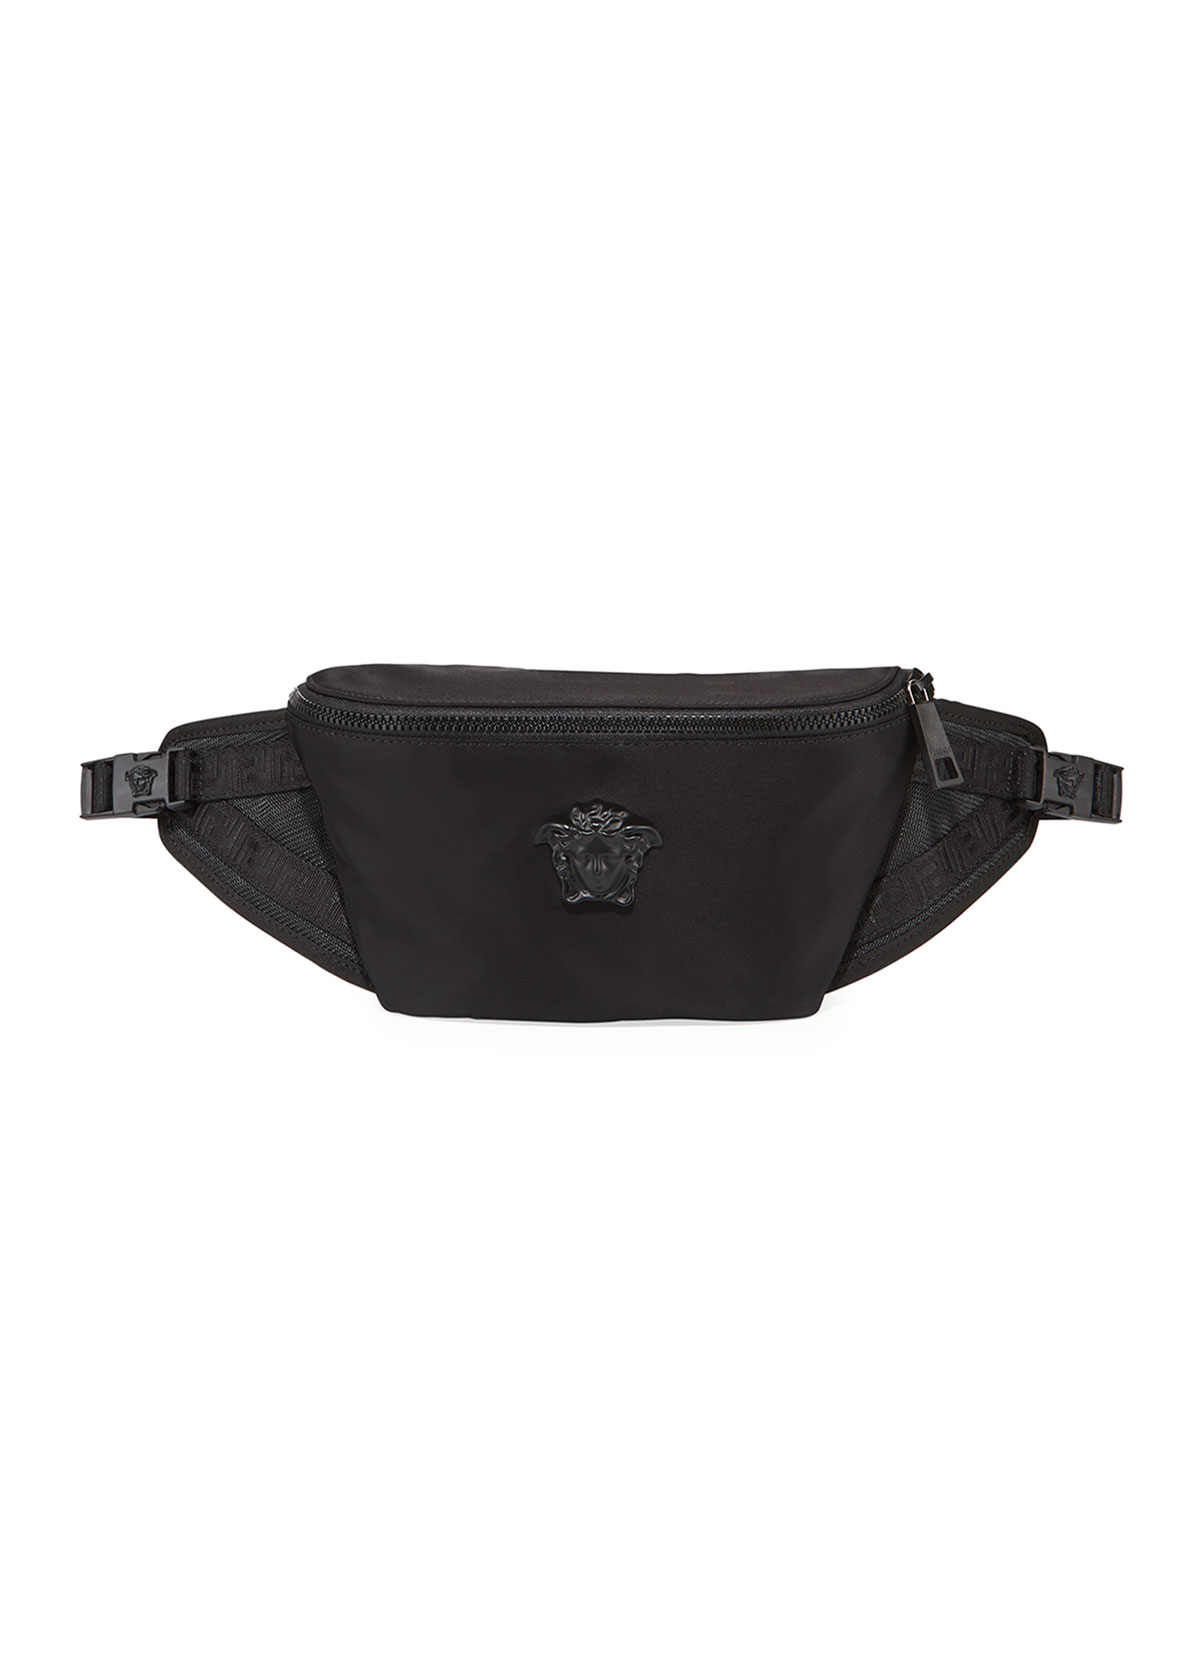 Versace MEN'S TONAL MEDUSA HEAD BELT BAG